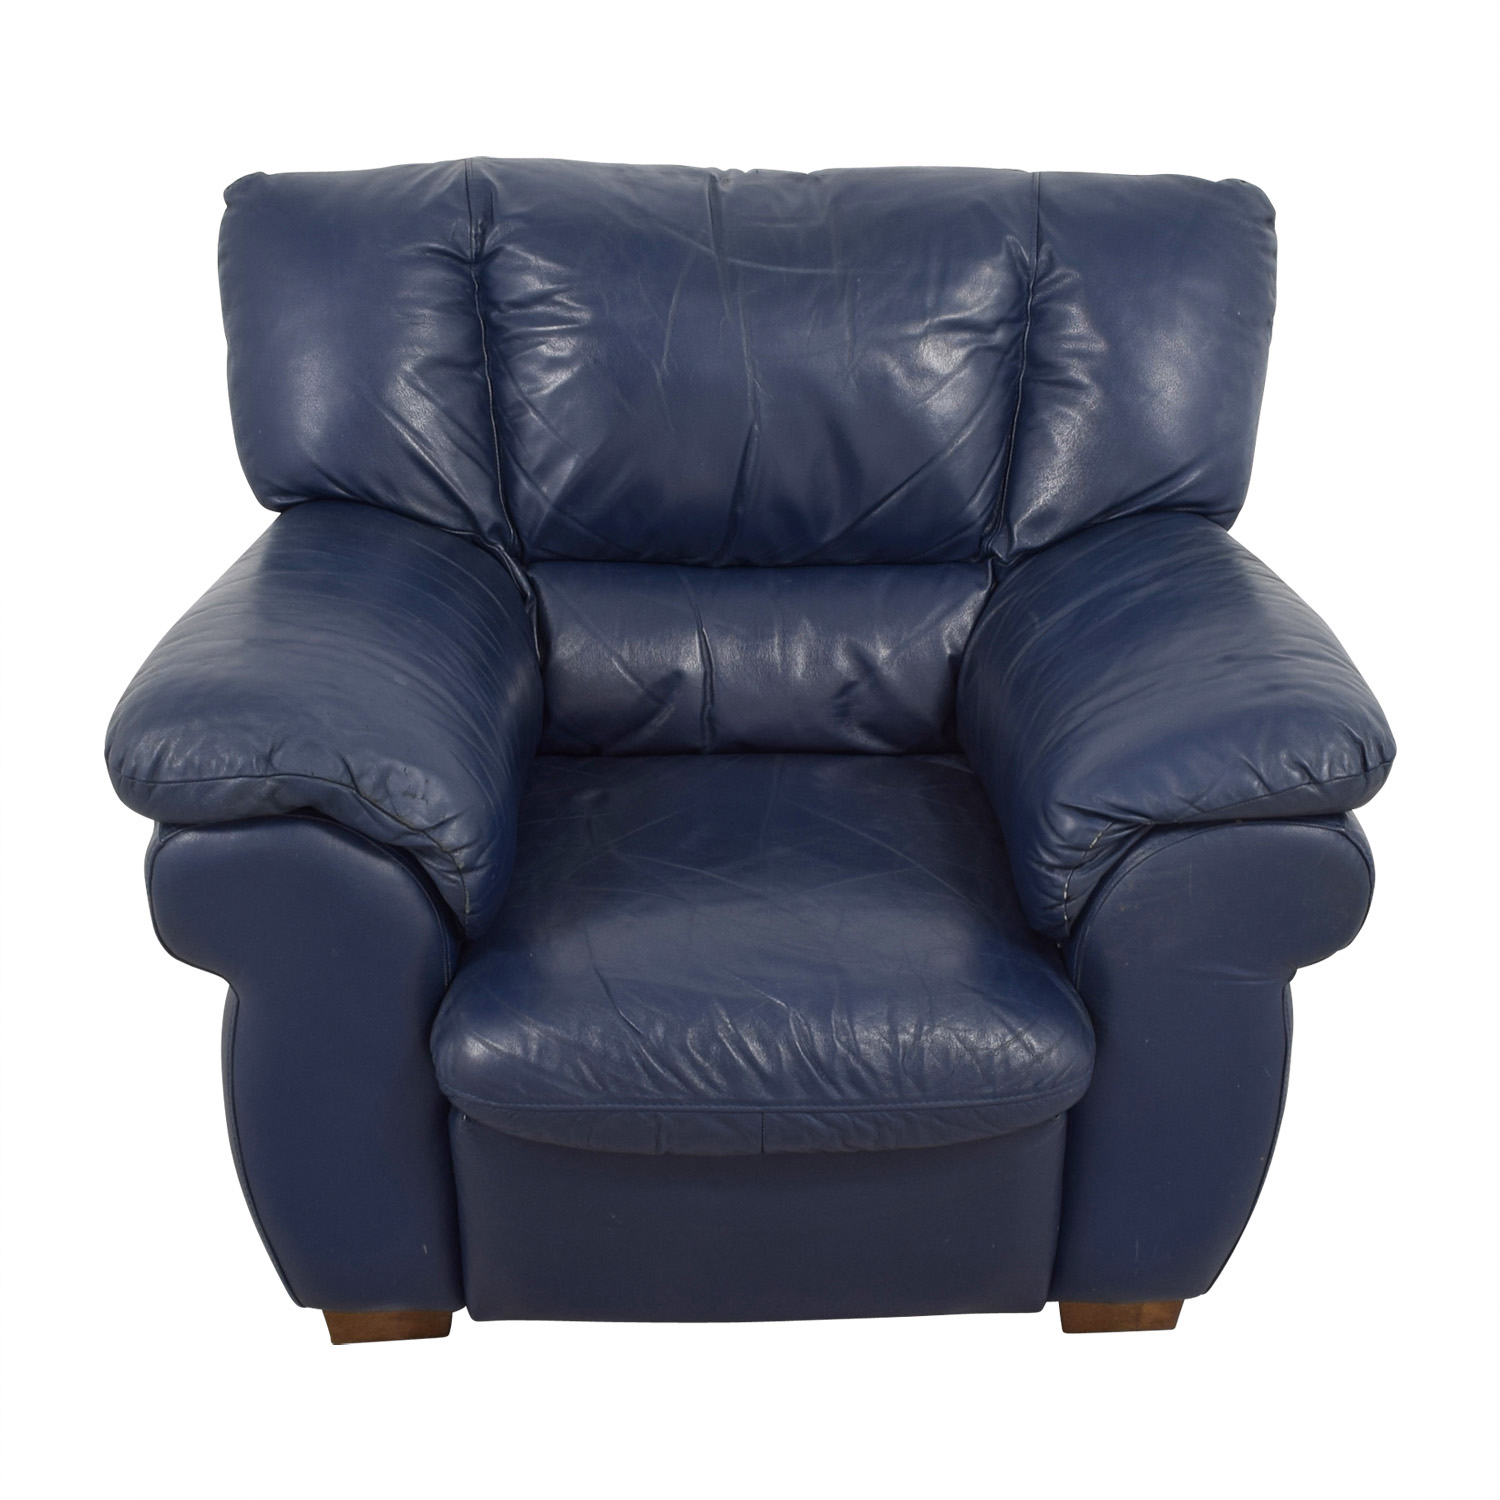 Blue Leather Chair 90 Off Macy 39s Macy 39s Navy Blue Leather Sofa Chair Chairs